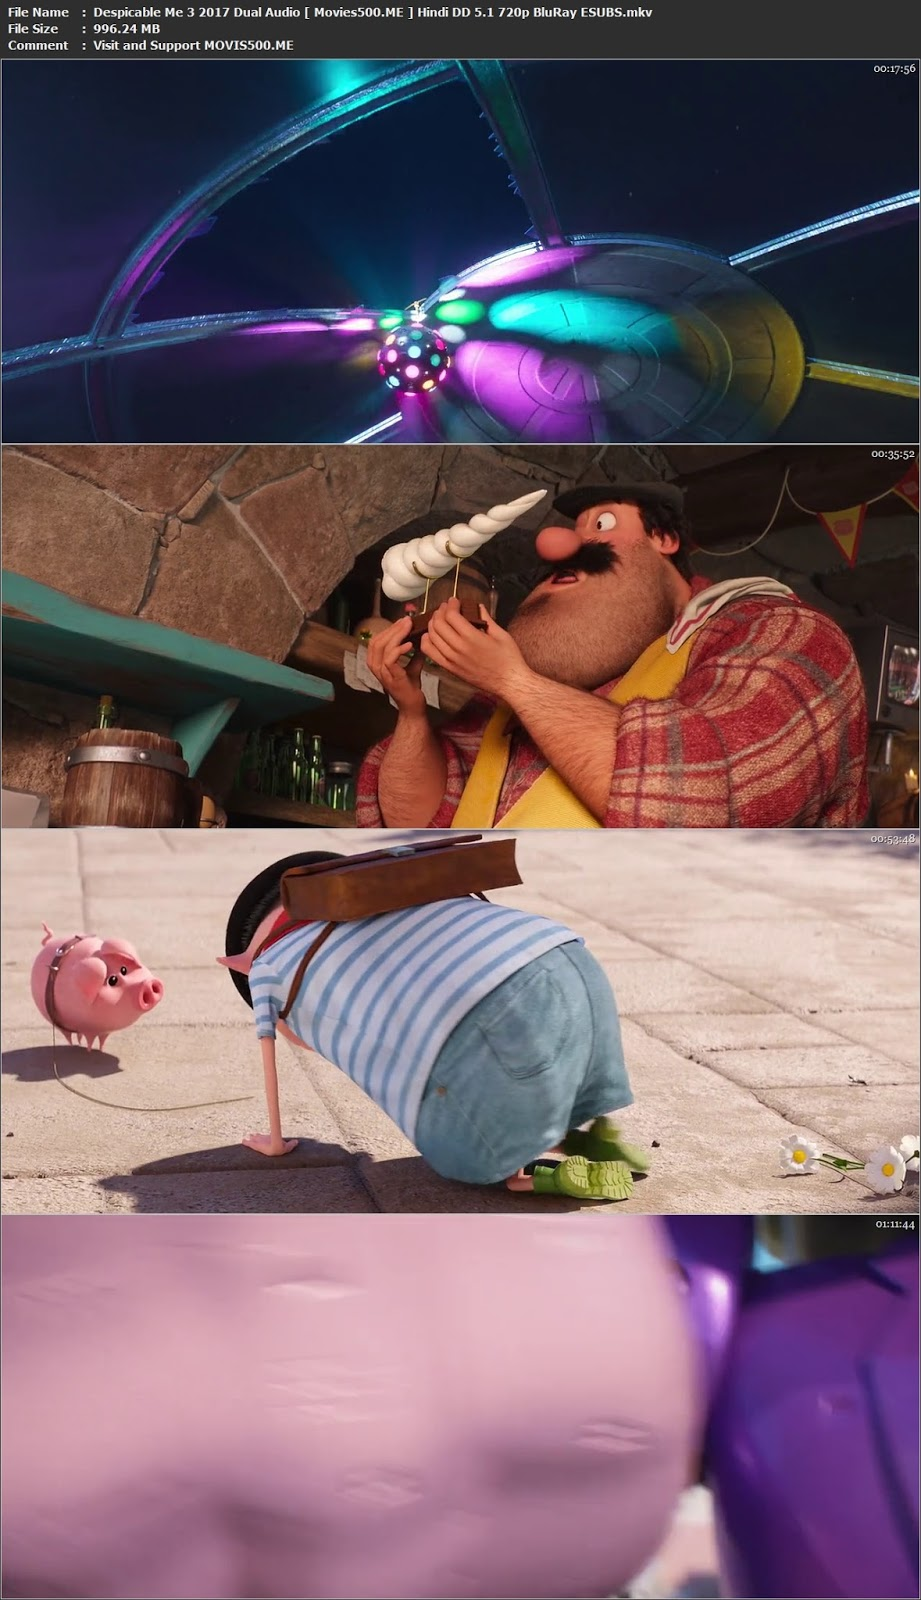 Despicable Me 3 2017 Dual Audio Hindi DD 5.1 720p BluRay ESUBS at movies500.site